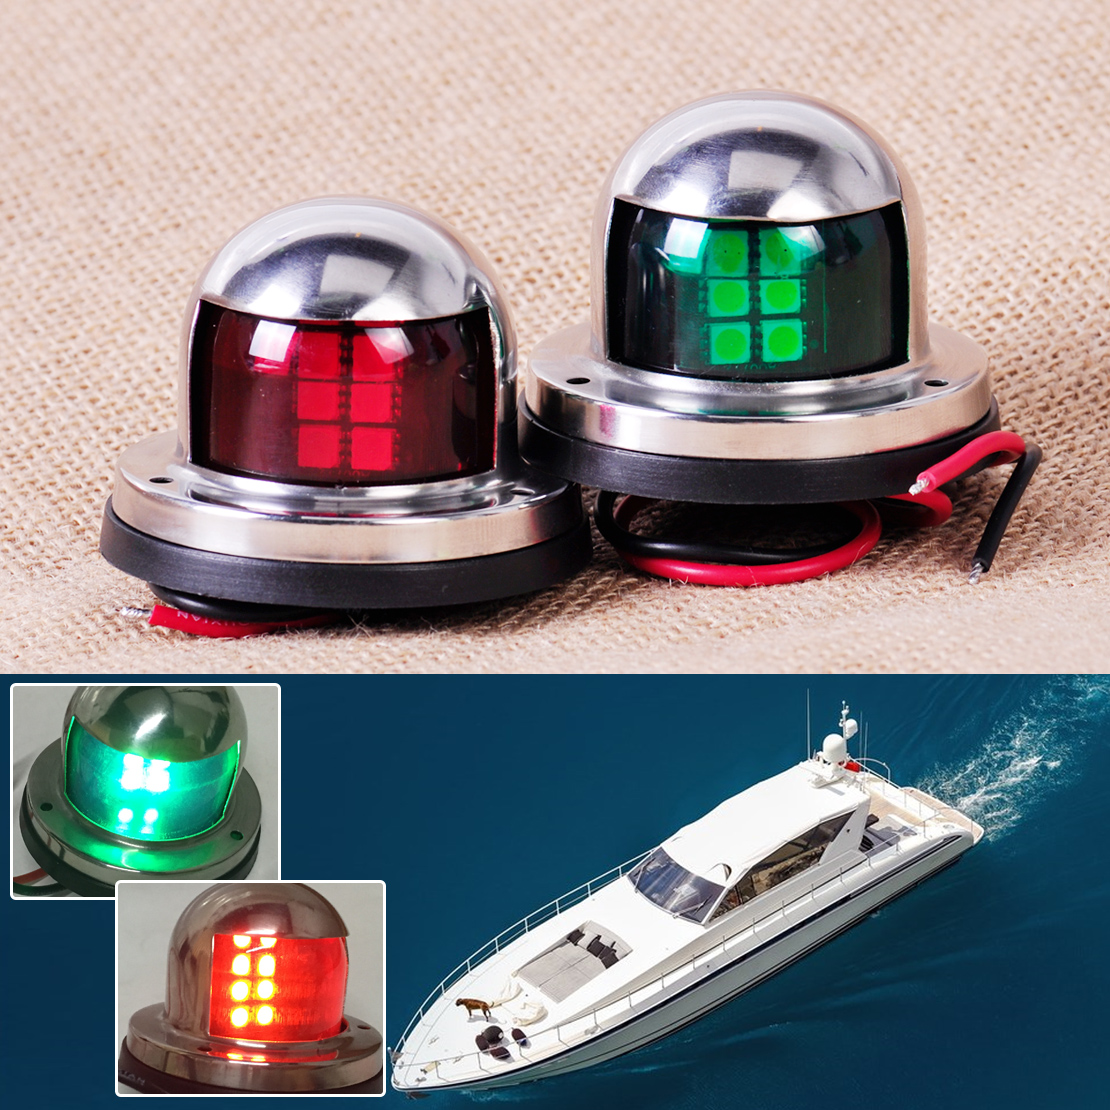 CITALL 1 Pair Stainless Steel 12V LED Bow Navigation Light Red Green Sailing Signal Light for